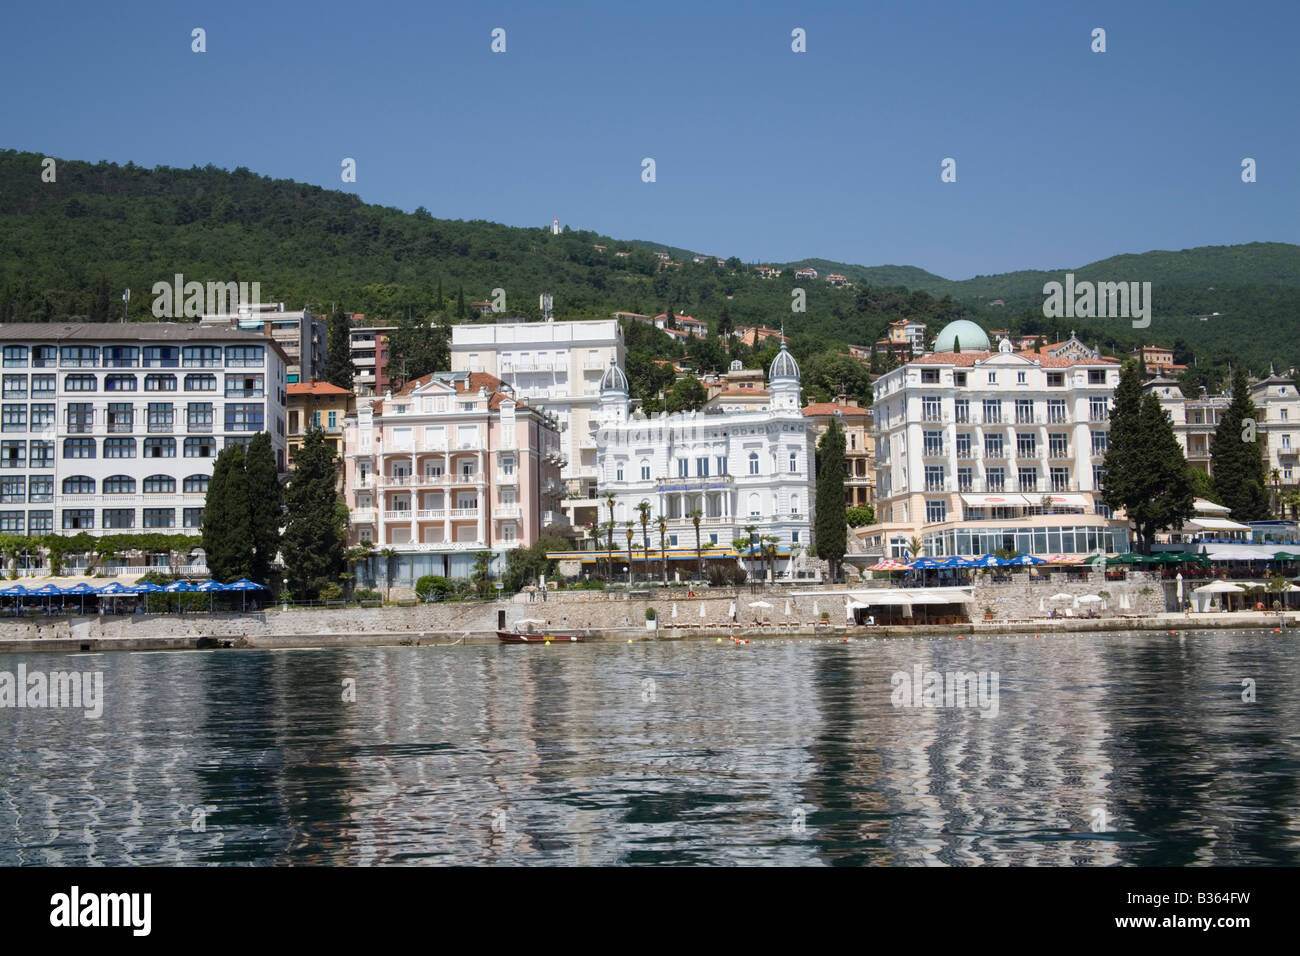 Opatija Istria Croatia Europe May The Casino and sea front hotels with cafes and restaurants Stock Photo